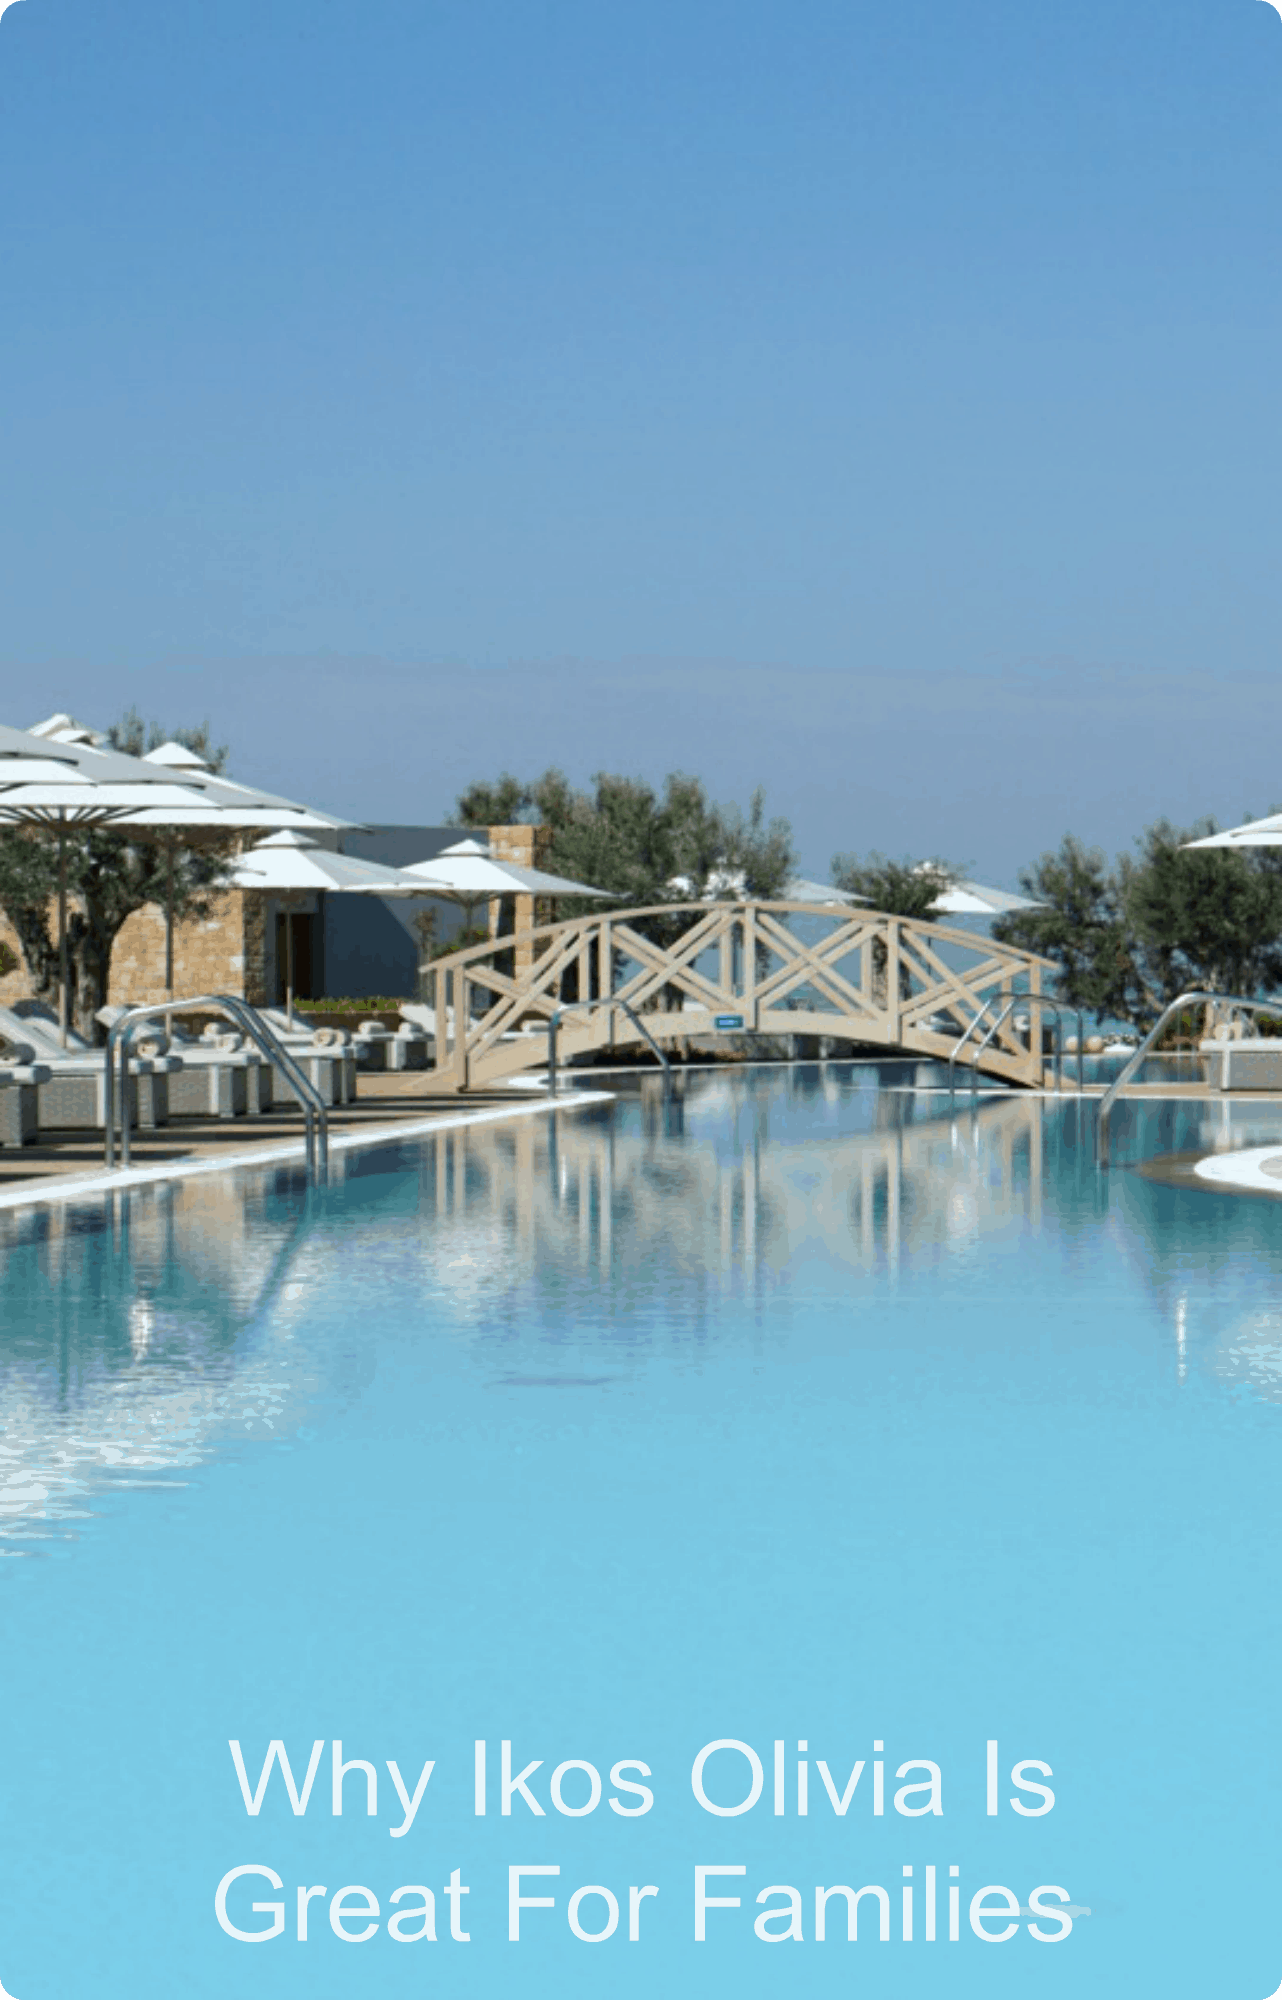 Why Ikos Olivia in Halkidiki in Greece is the perfect family resort, with lots of sporting activities for teens.